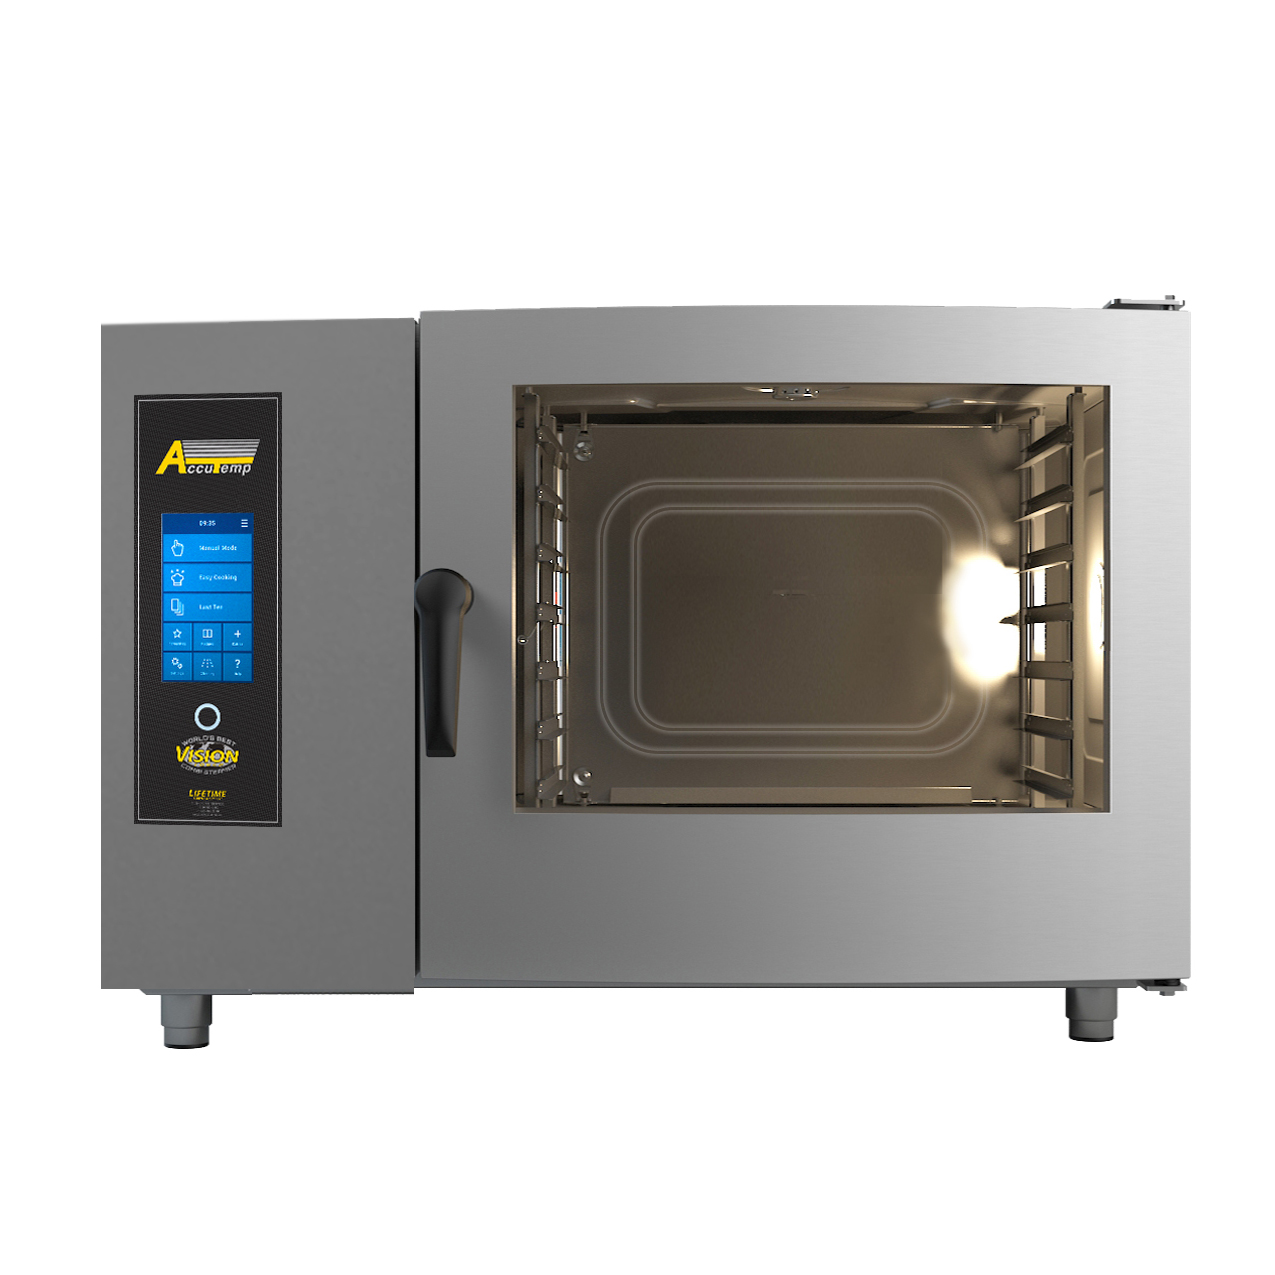 AccuTemp T0621IN-1201000 combi oven, gas